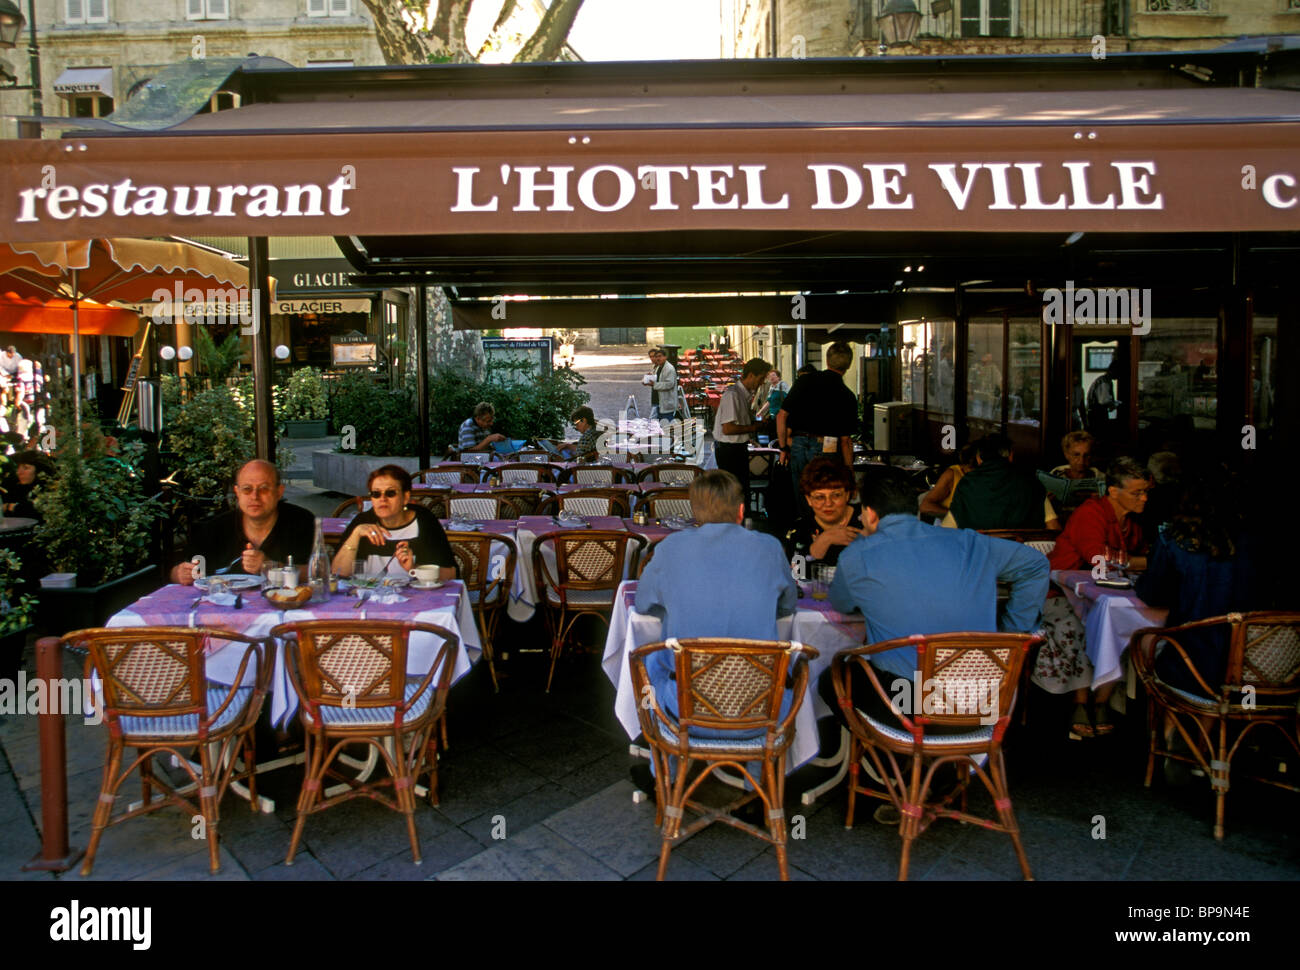 https www alamy com stock photo lhotel de ville restaurant french restaurant french food and drink 30946958 html